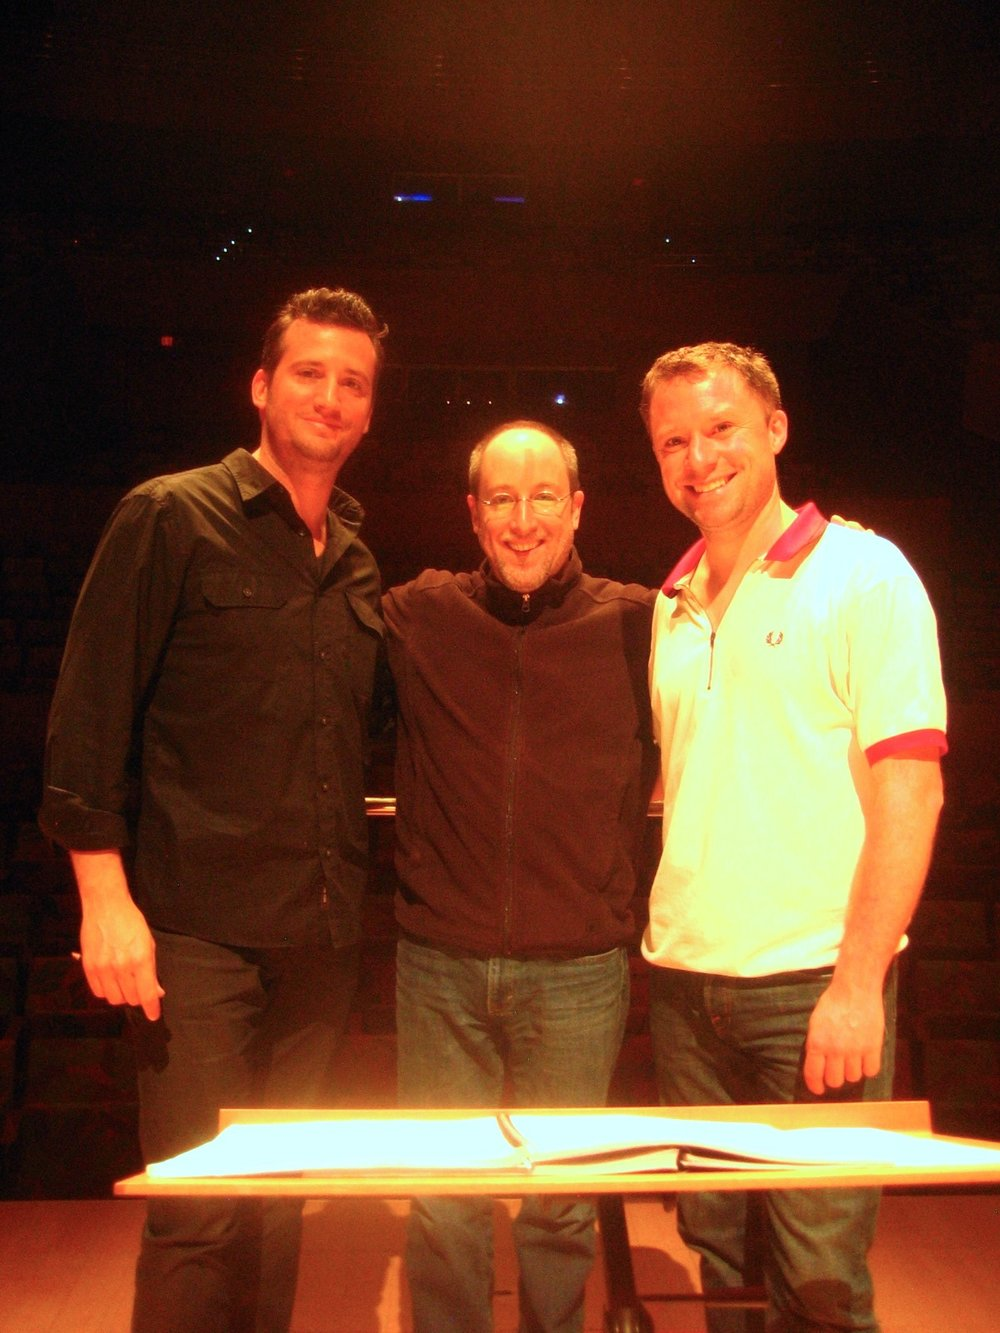 With Joe Pereira and Jeff Milarsky at the premiere of Joe's concerto in Los Angeles, May 2012.